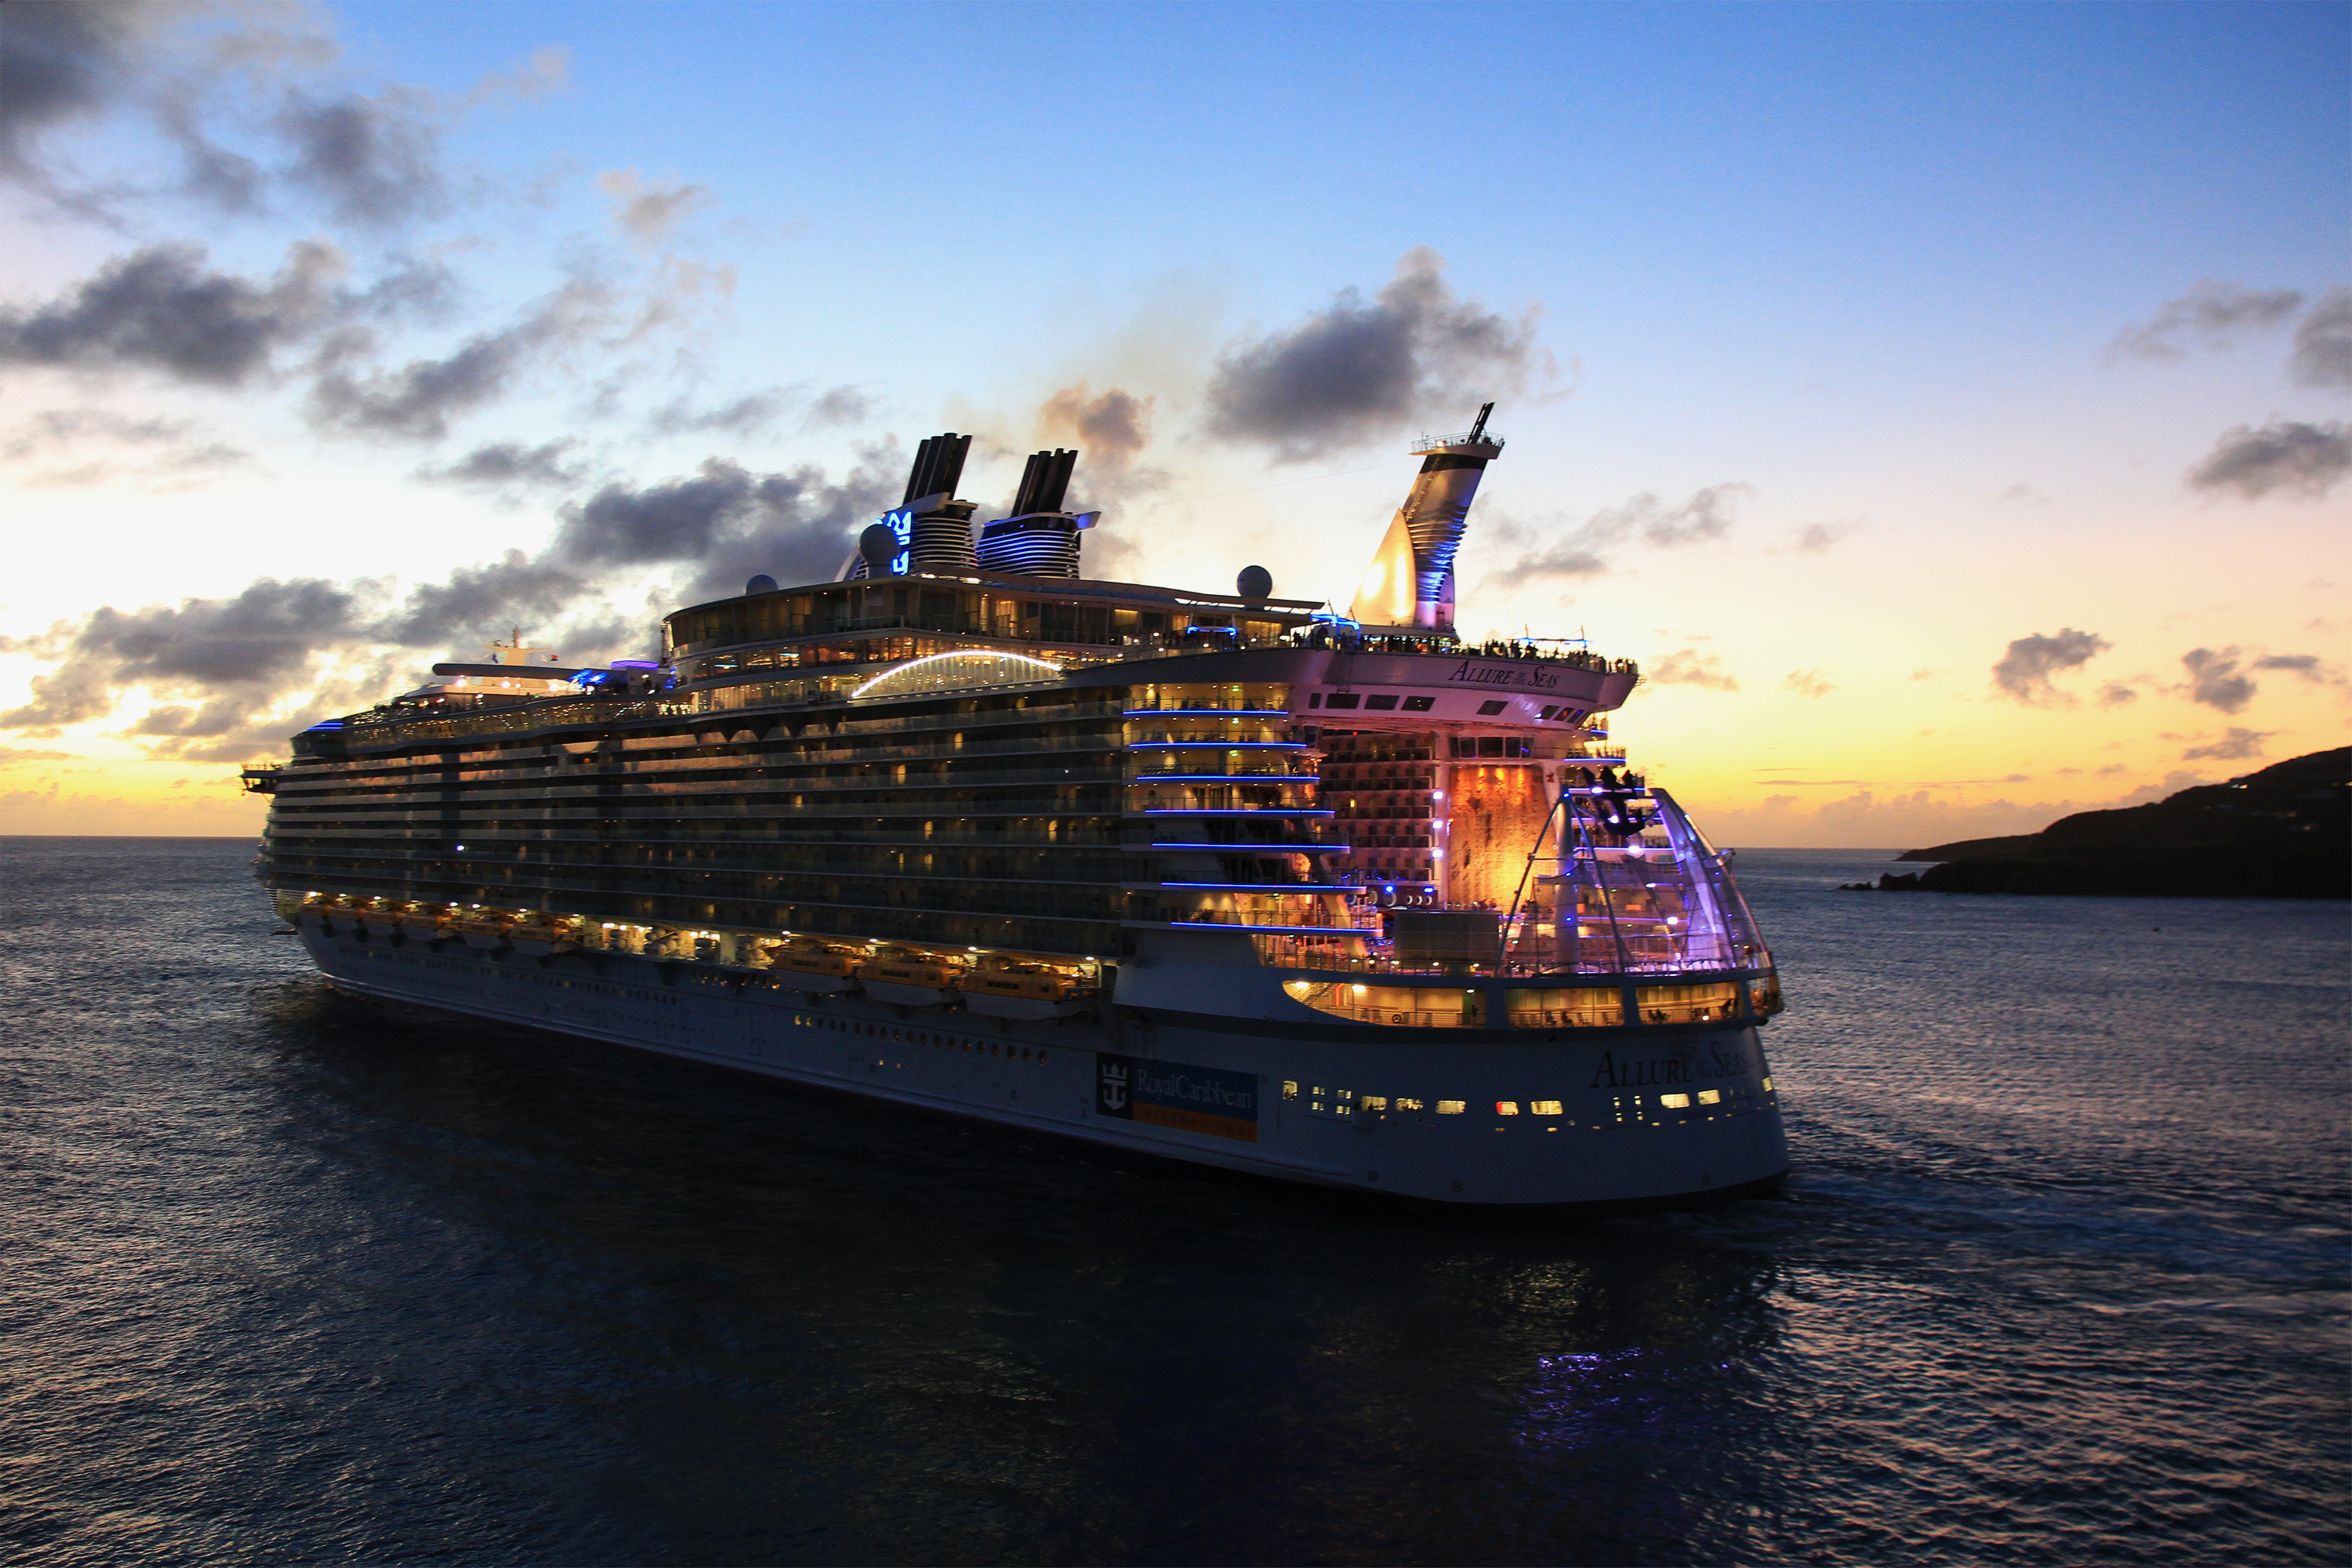 tEw0Ws7 Allure of the seas night